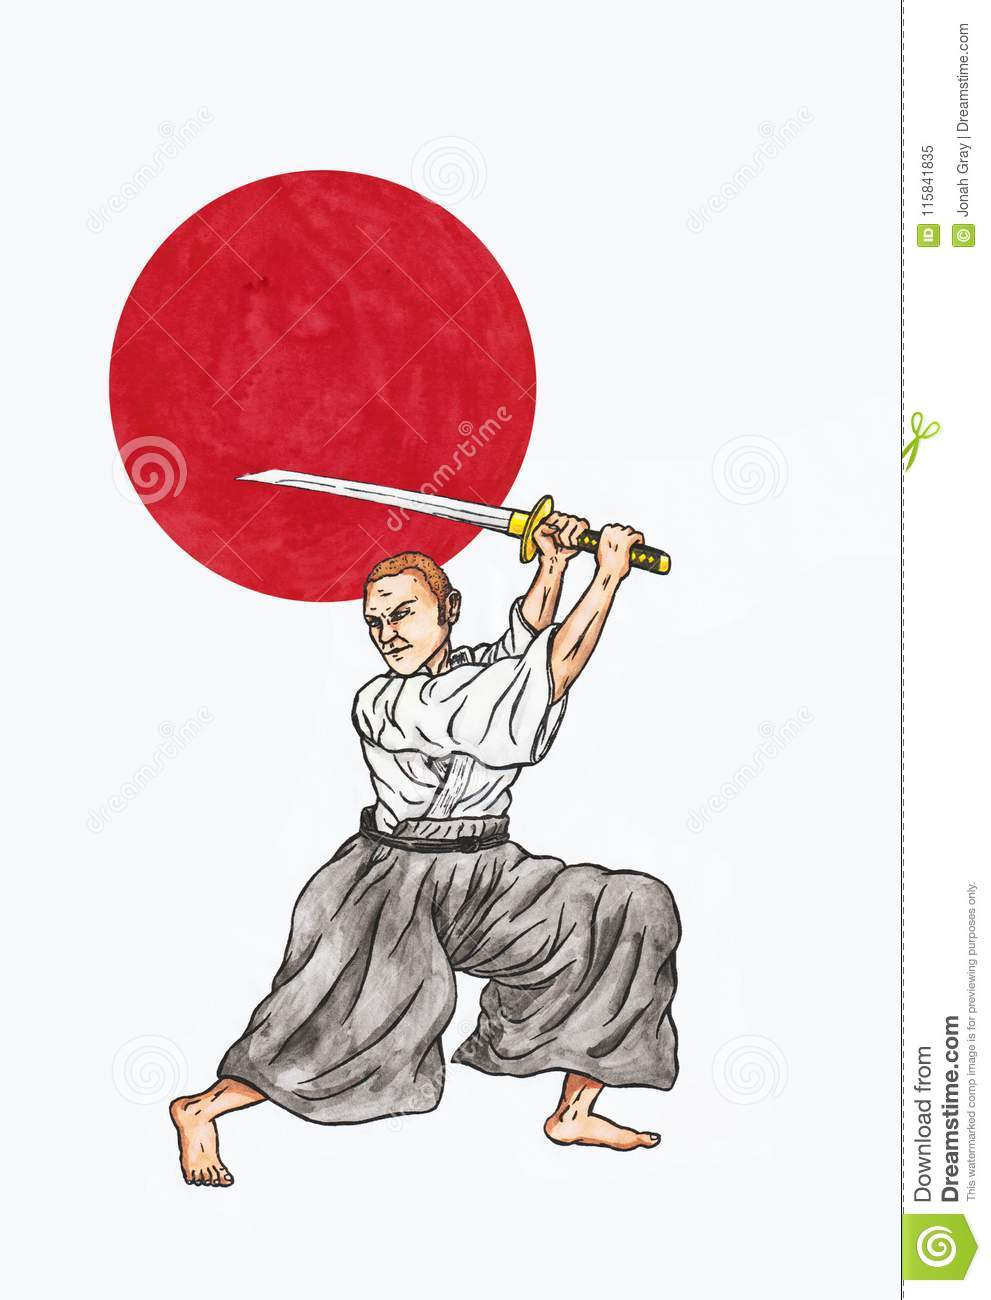 Japanese Sword Fighter and the Japanese Red rising sun The Spirit of Asia II, 2018